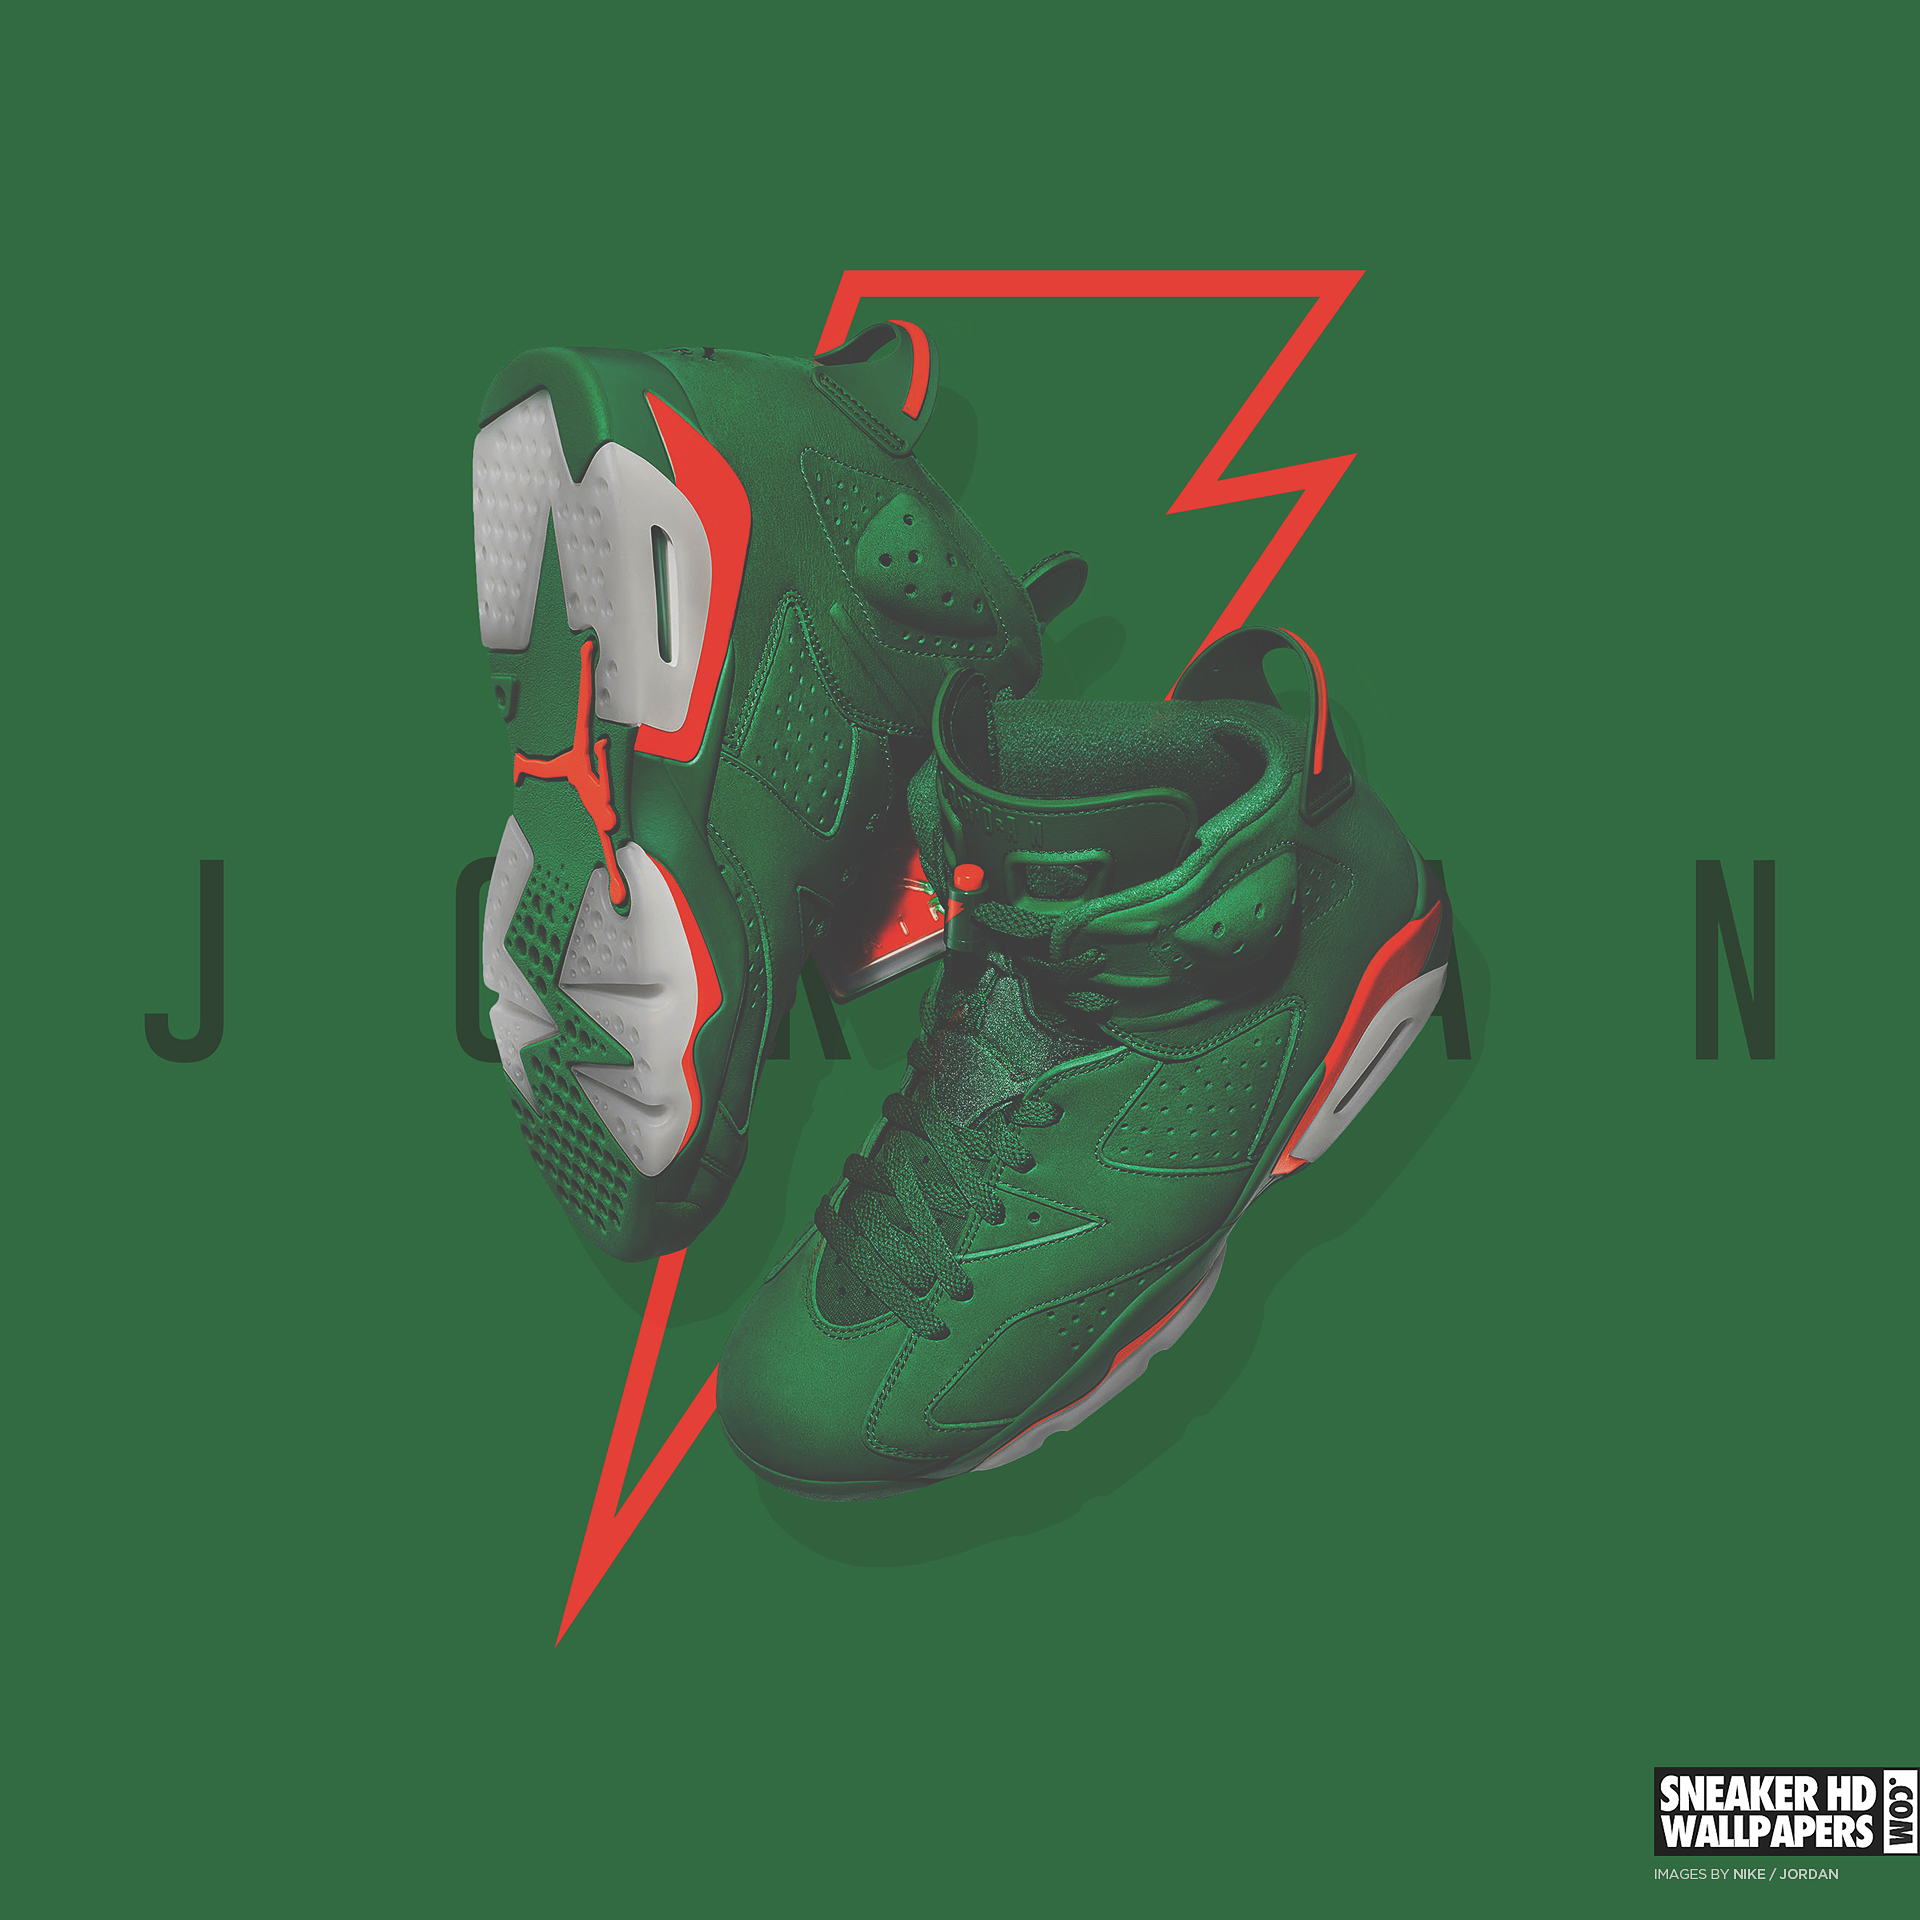 Gatorade Jordan 6 wallpaper. Mobile: iPhone / Android wallpaper & Android /  Galaxy QHD wallpaper | HD: HD wallpaper | Tablet: Tablet wallpaper